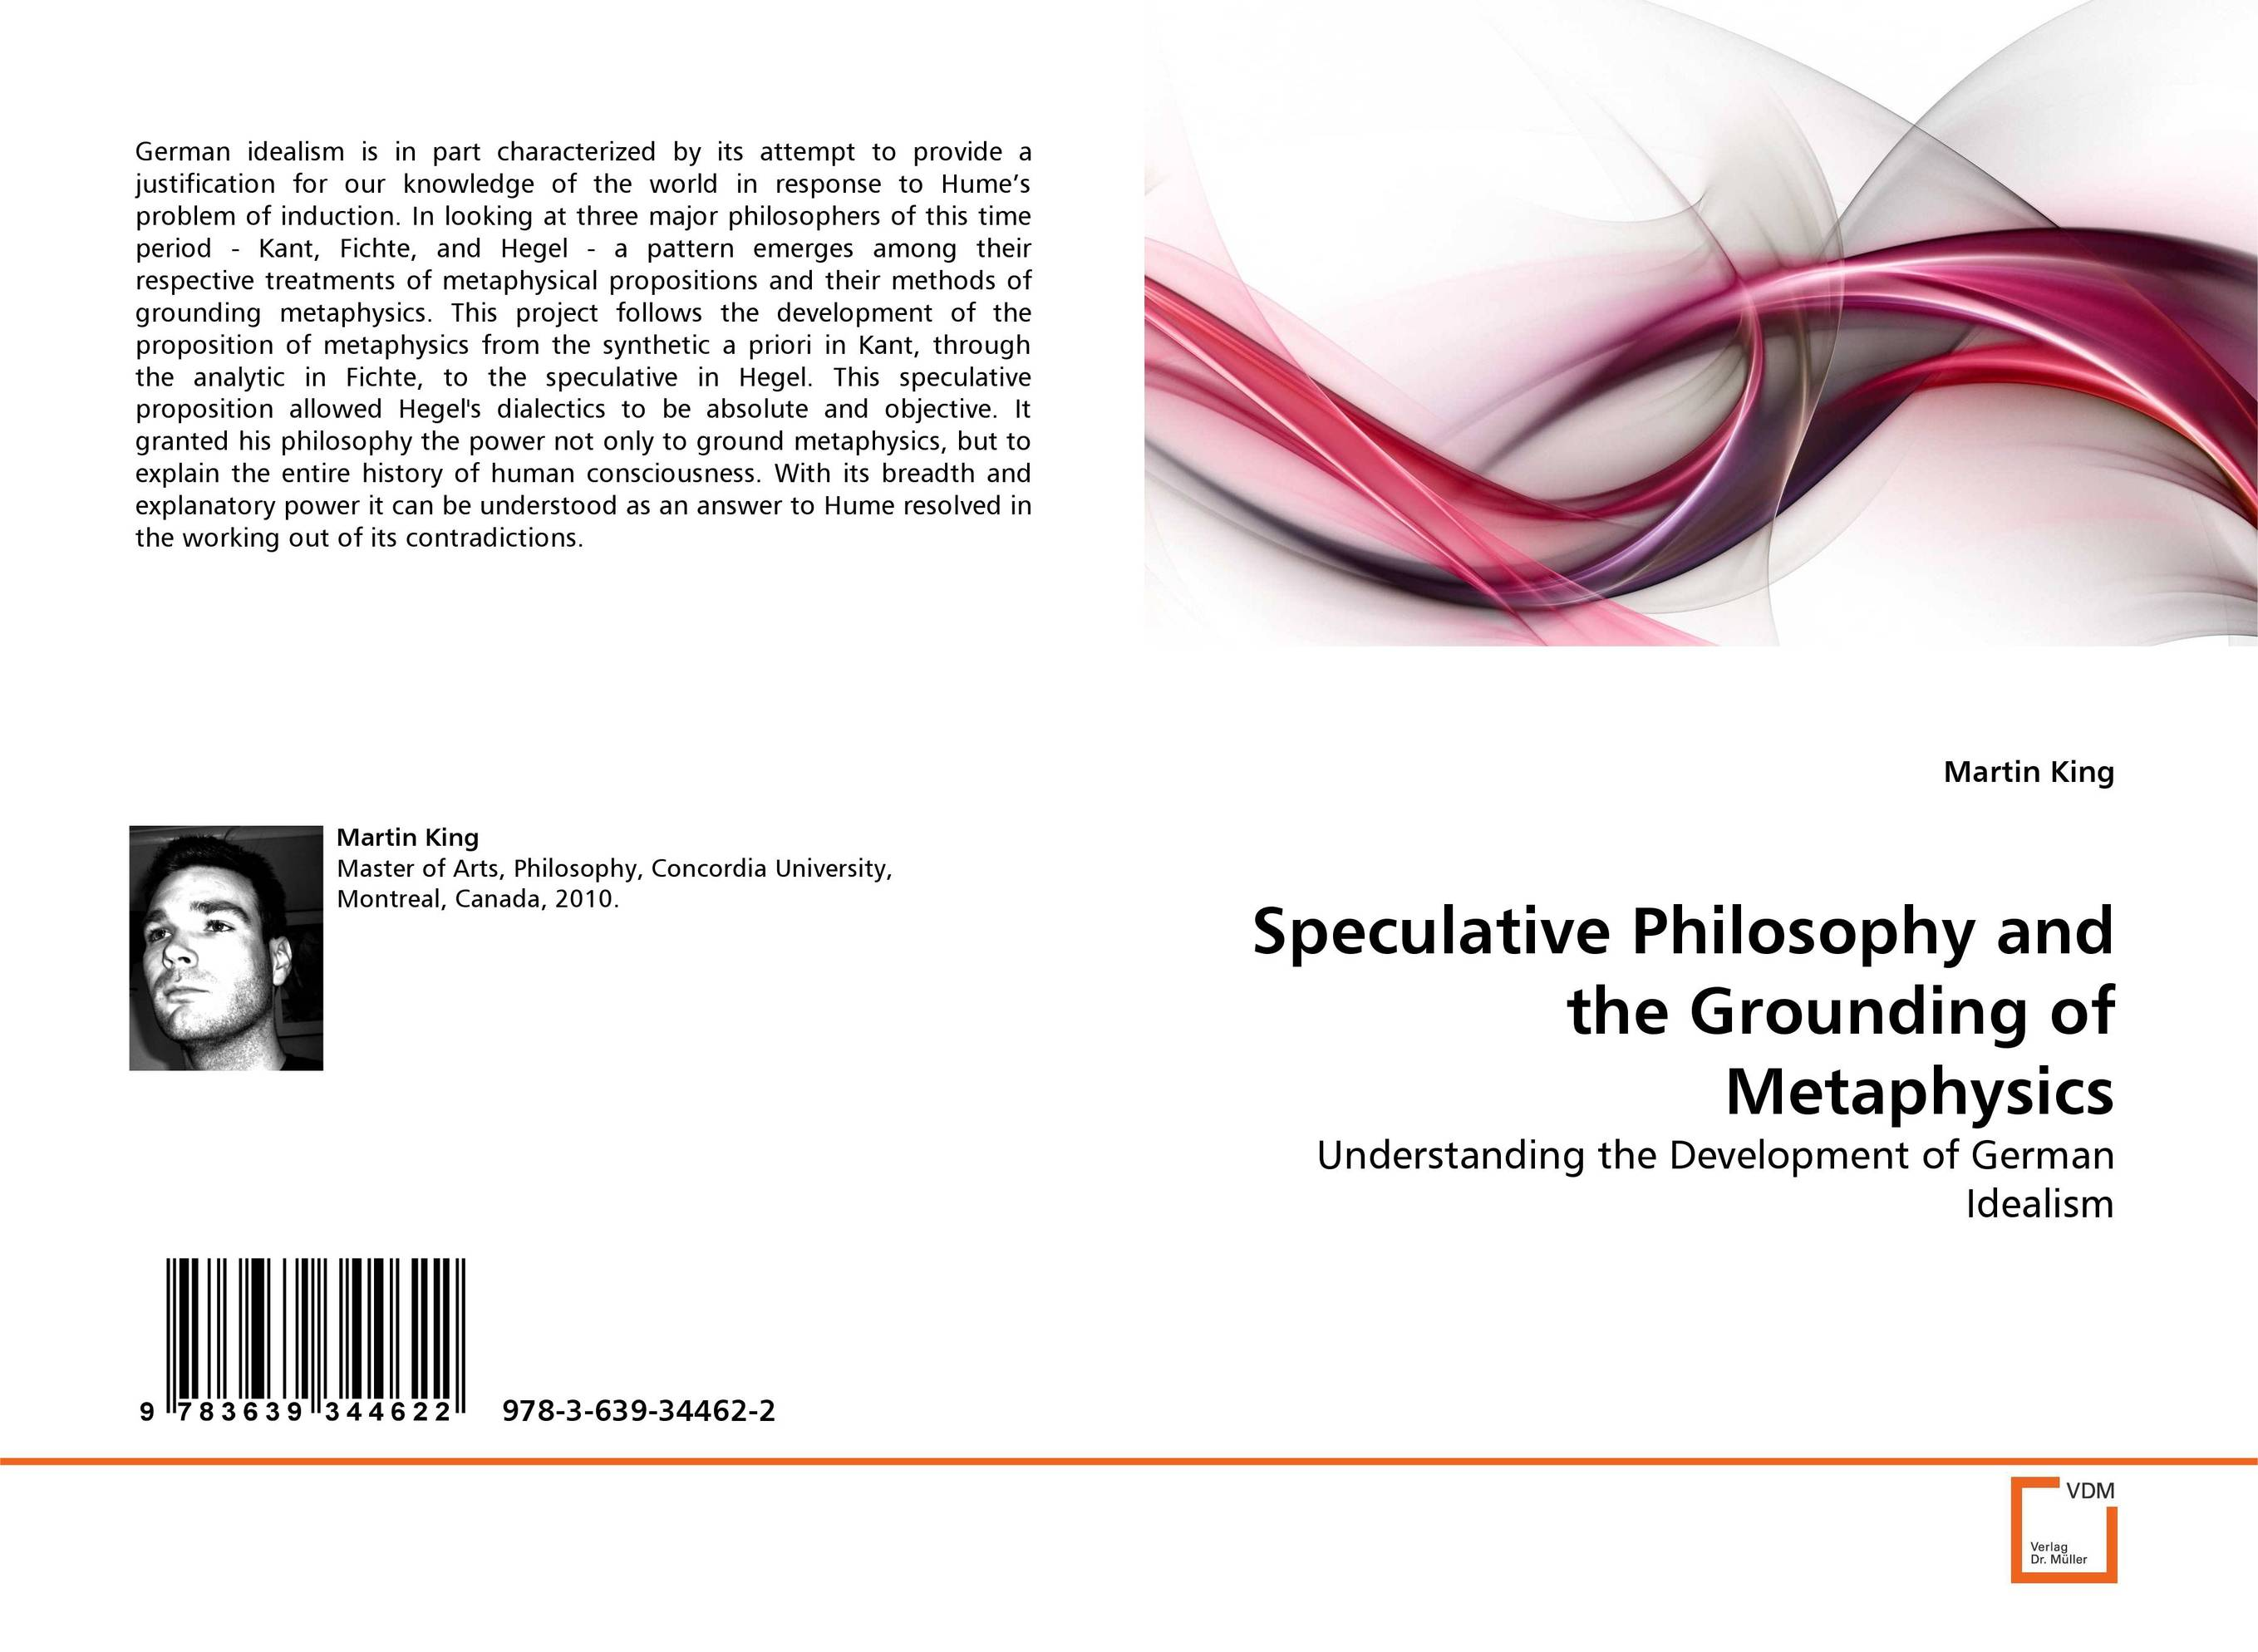 Speculative Philosophy and the Grounding of Metaphysics michel foucault introduction to kant s anthropology from a pragmatic point of view translated by roberto nigro